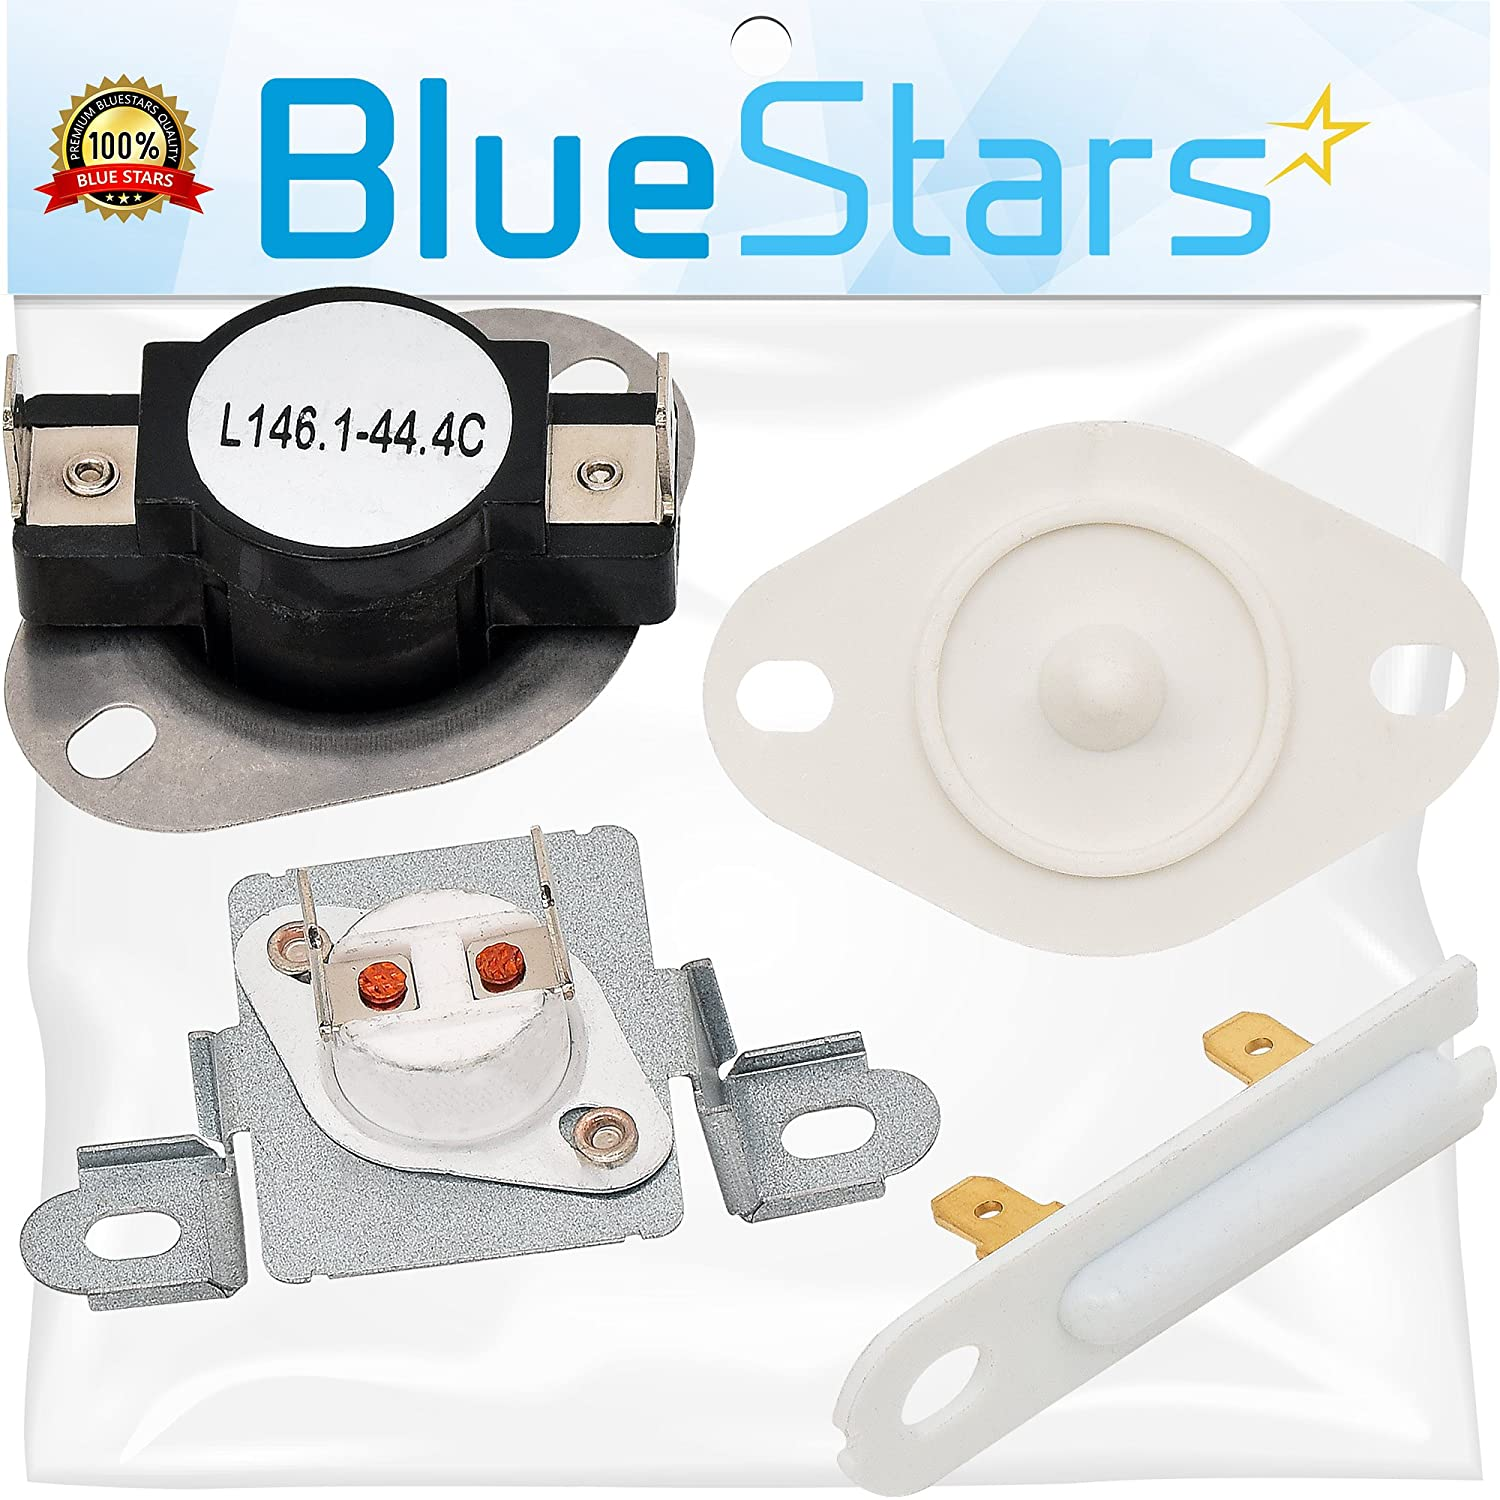 3392519 & 8577274 & 279973 Dryer Thermal Cut-Off Fuse Kit with Thermistor and Thermal Fuse Replacement Kit by Blue Stars - Exact Fit for Whirlpool & Kenmore Dryers